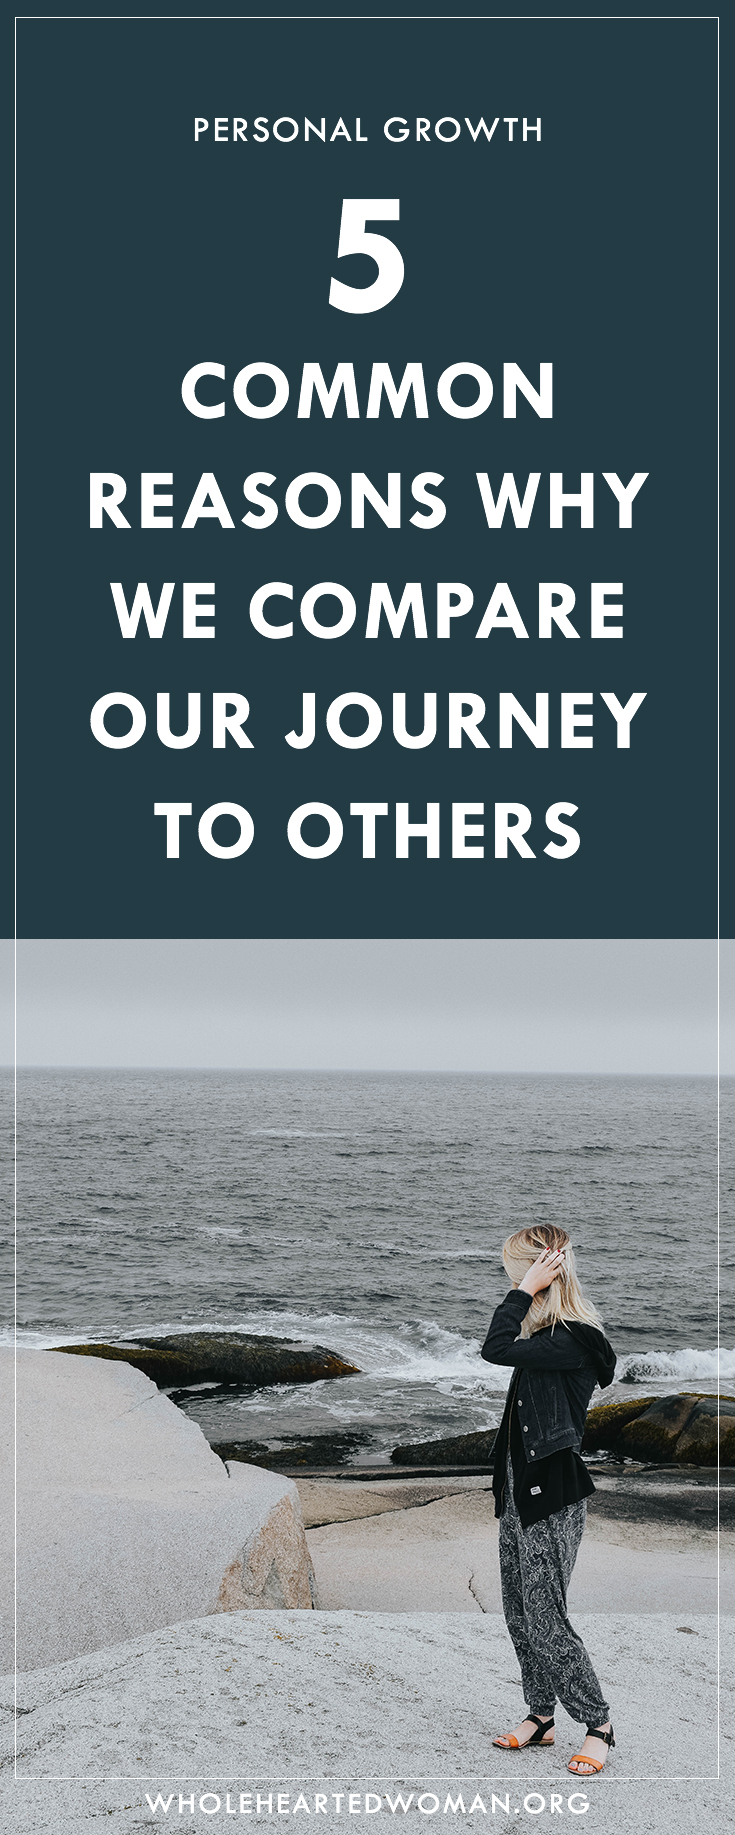 5 Common Reasons Why We Compare Our Journey To Others | Comparison Is The Thief Of Joy | Why Do We Compare Ourselves So Much With Others | Why We Need To Stop Comparing Our Journey To Others | How To Embrace The Pace Of Your Own Journey |Community Over Competition | Empowered Women Empower Women | Personal Development and Growth Blog | Self-Awareness | Wholehearted Woman